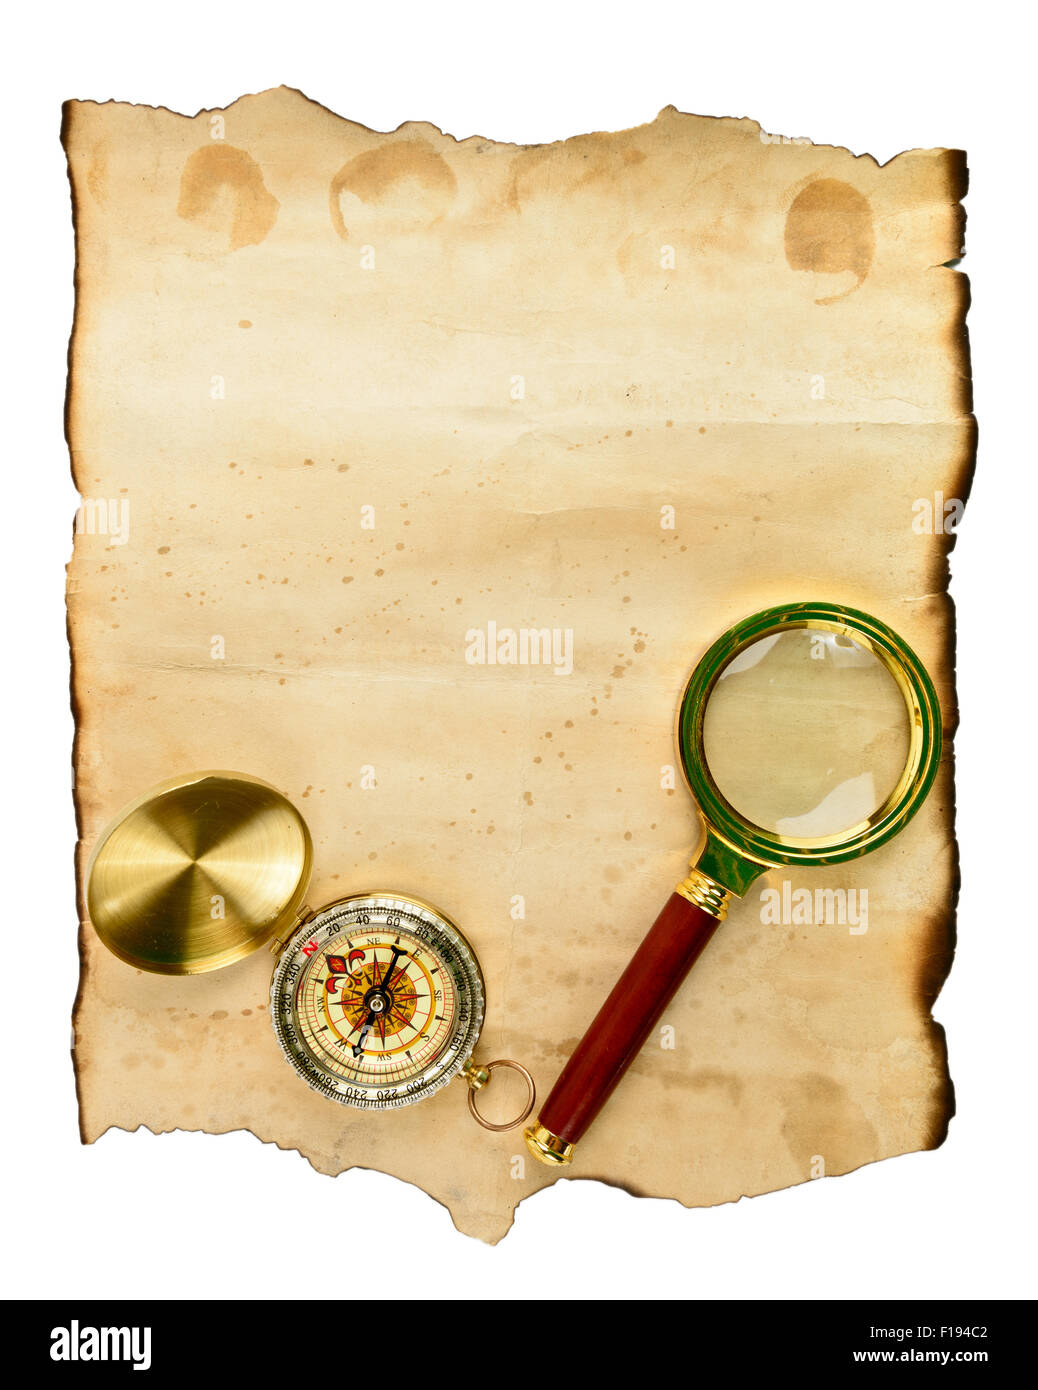 Old grunge blank paper sheet with compass and glass - Stock Image